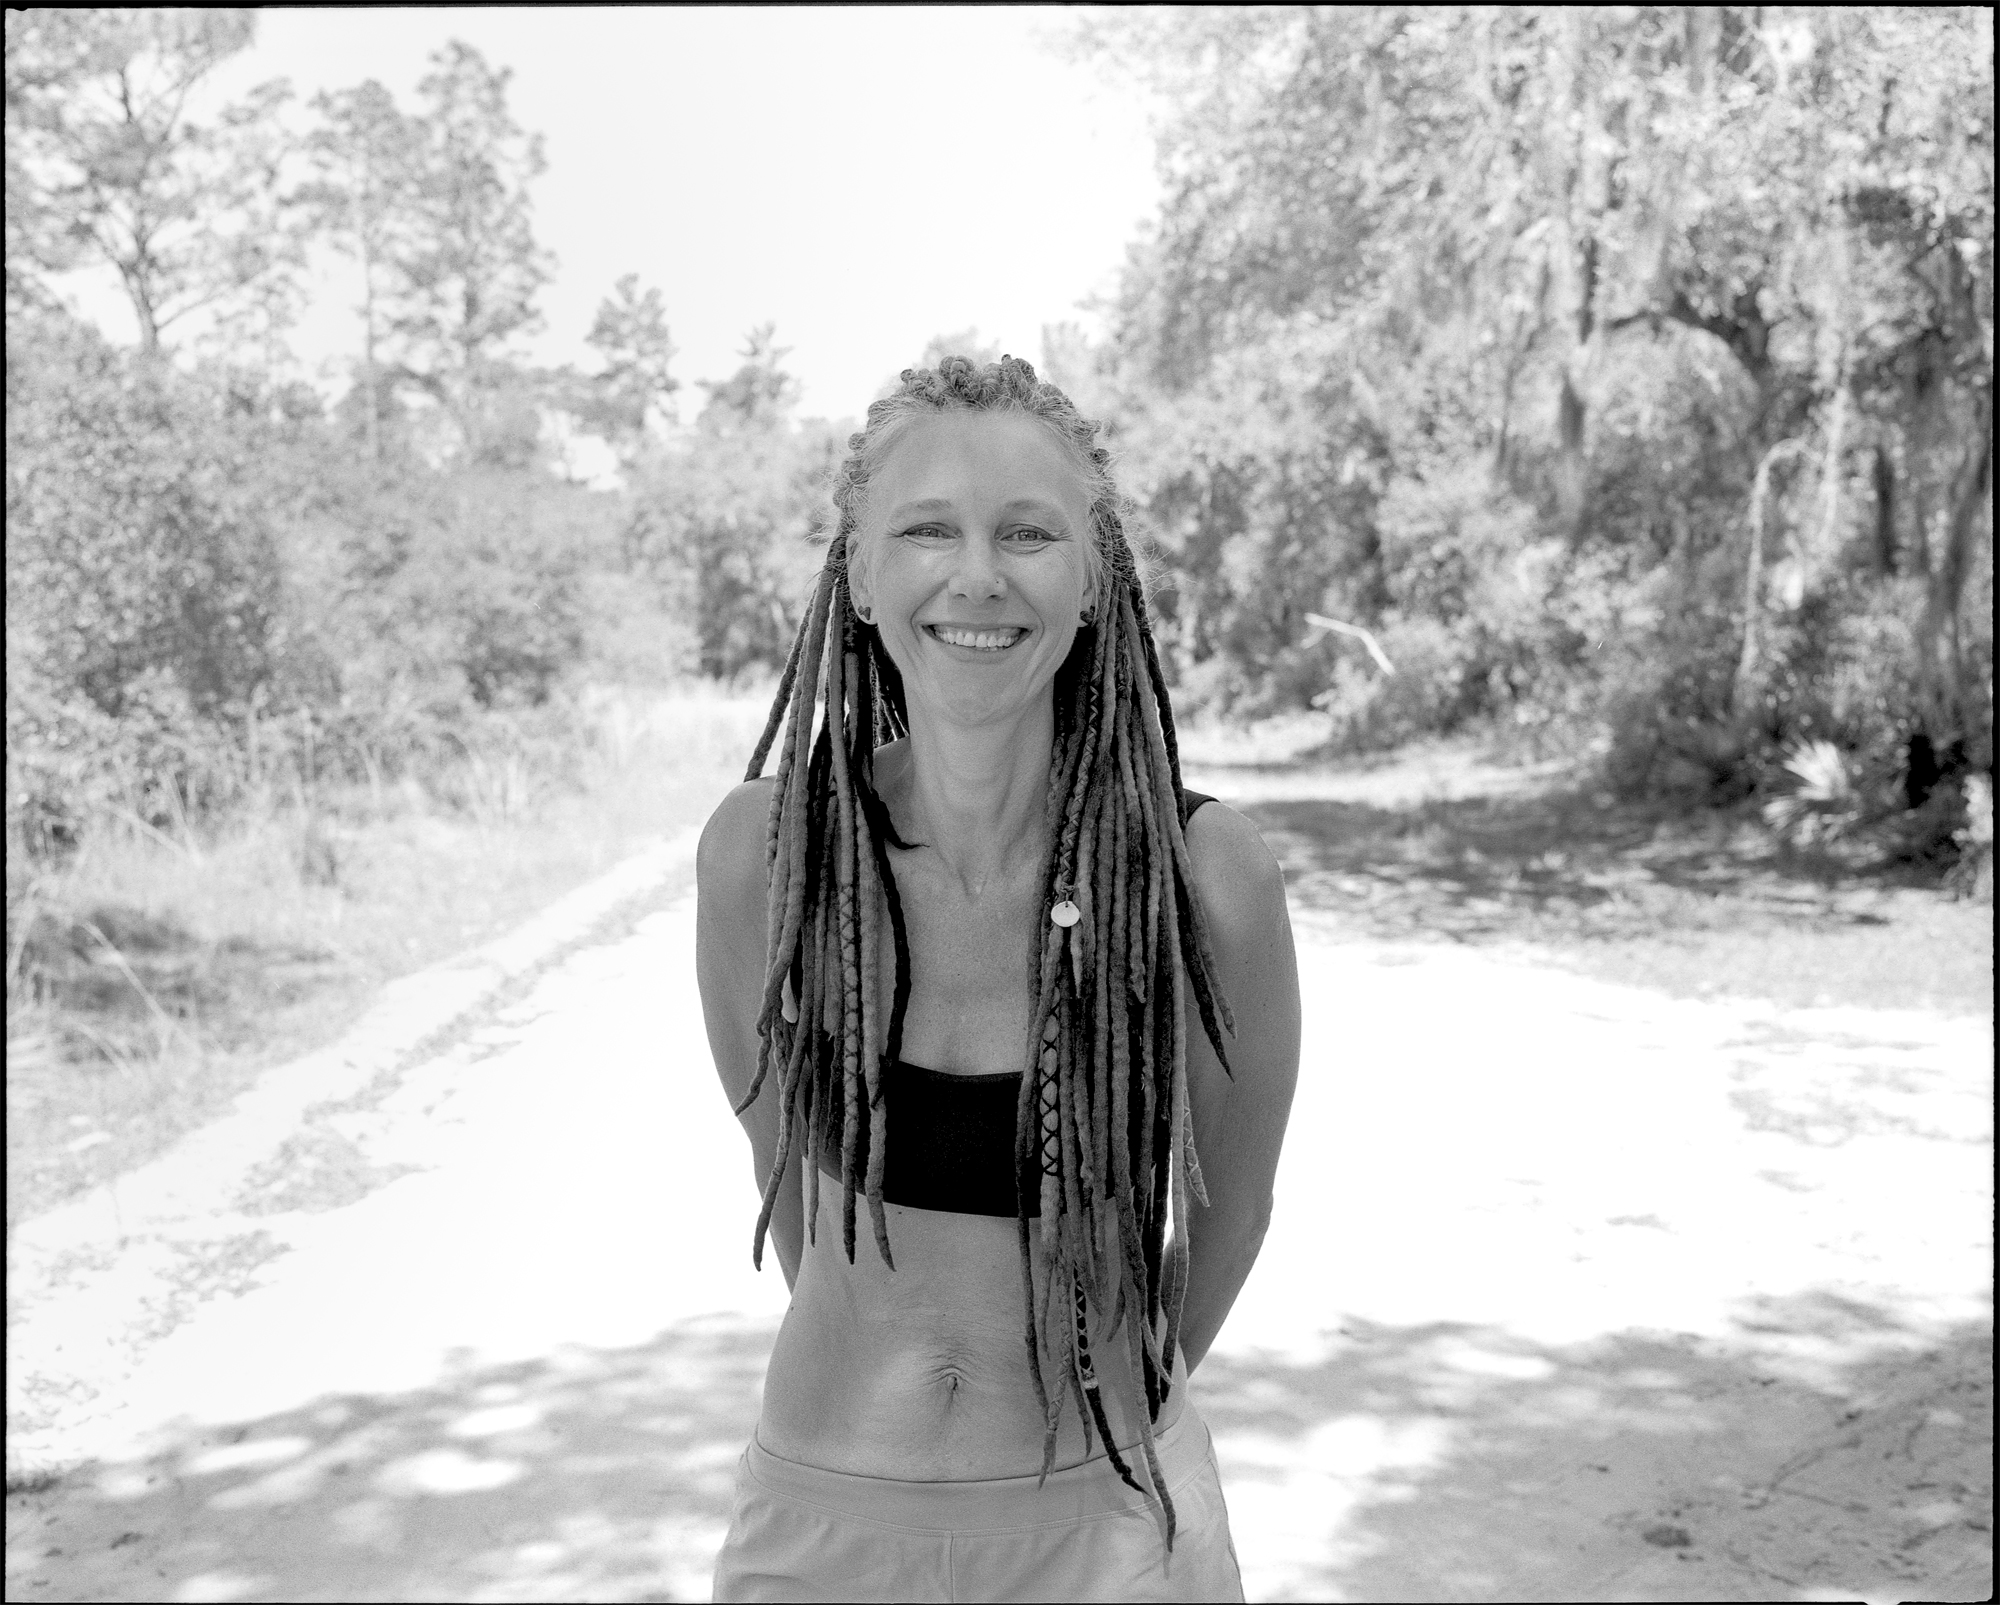 Krysten Nelson smiles for a portrait at the Pat's Island Trailhead parking lot. You can follow her Instagram account  @thehennahighway . Shot details: Mamiya 7ii, 80mm f/4, Kodak Tri-X 400 pushed to 1600